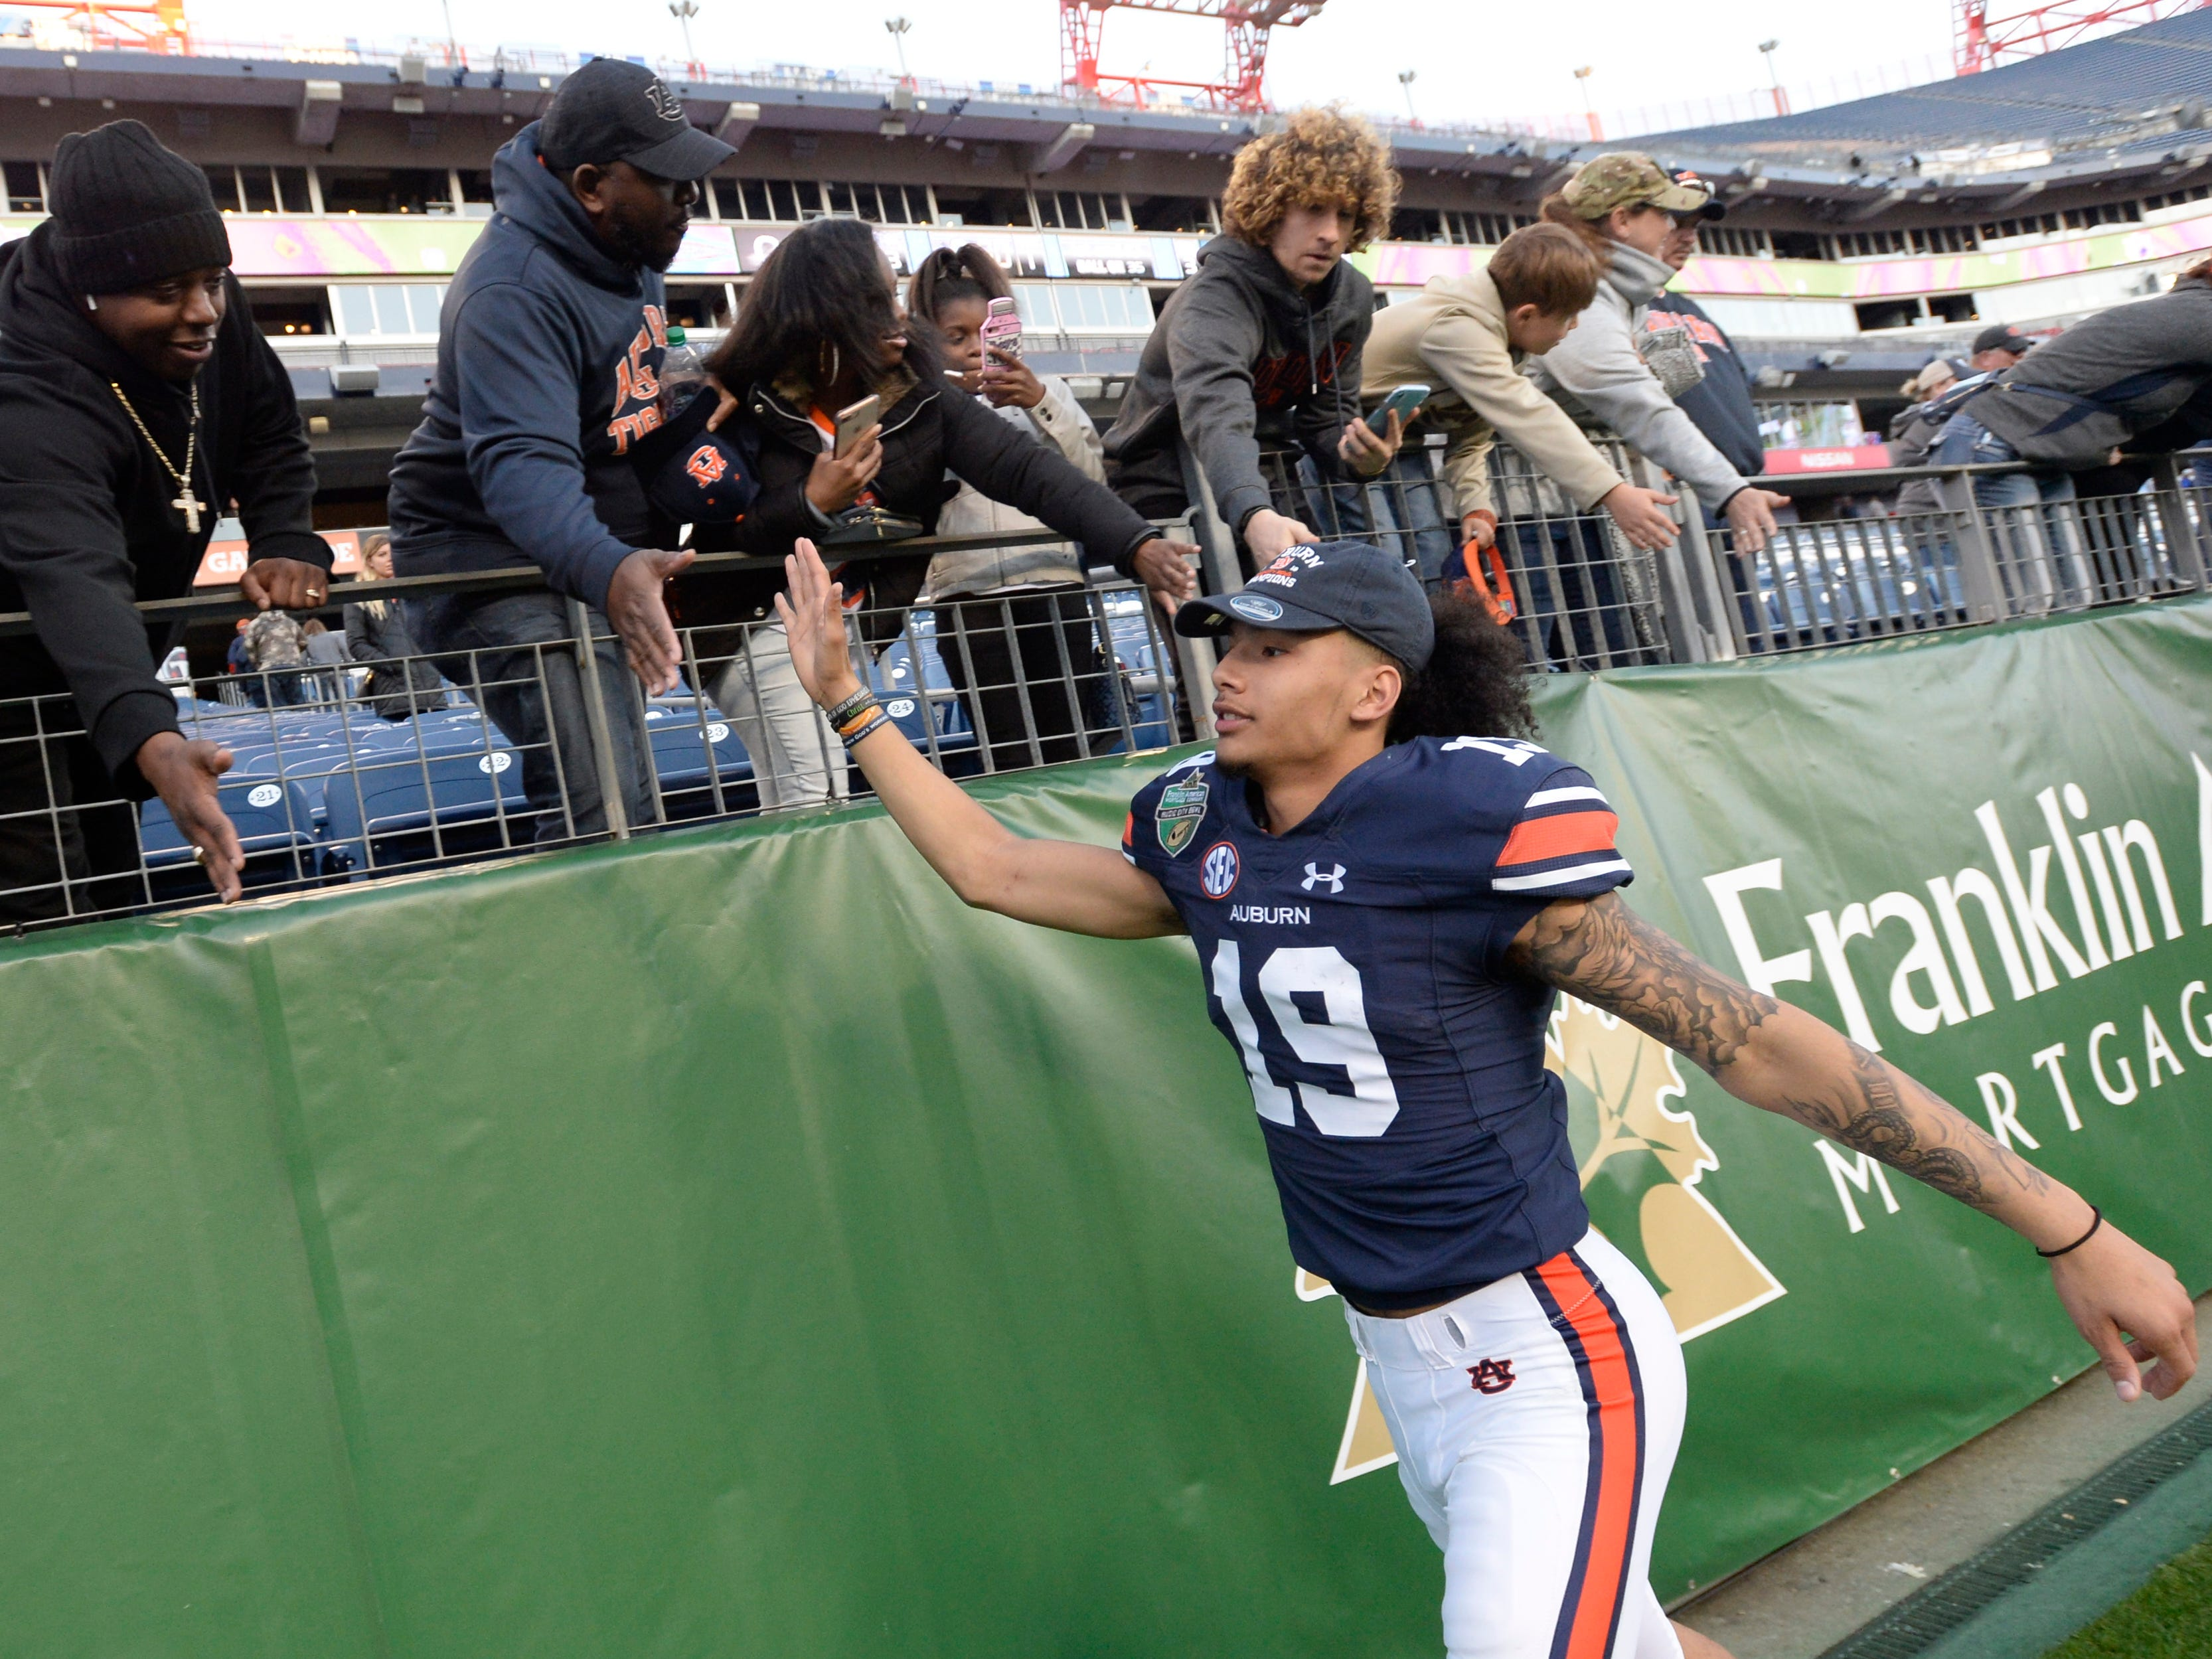 Auburn wide receiver Matthew Hill (19) slaps hands with fans after the Music City Bowl NCAA college football game Friday, Dec. 28, 2018, at Nissan Stadium in Nashville, Tenn.